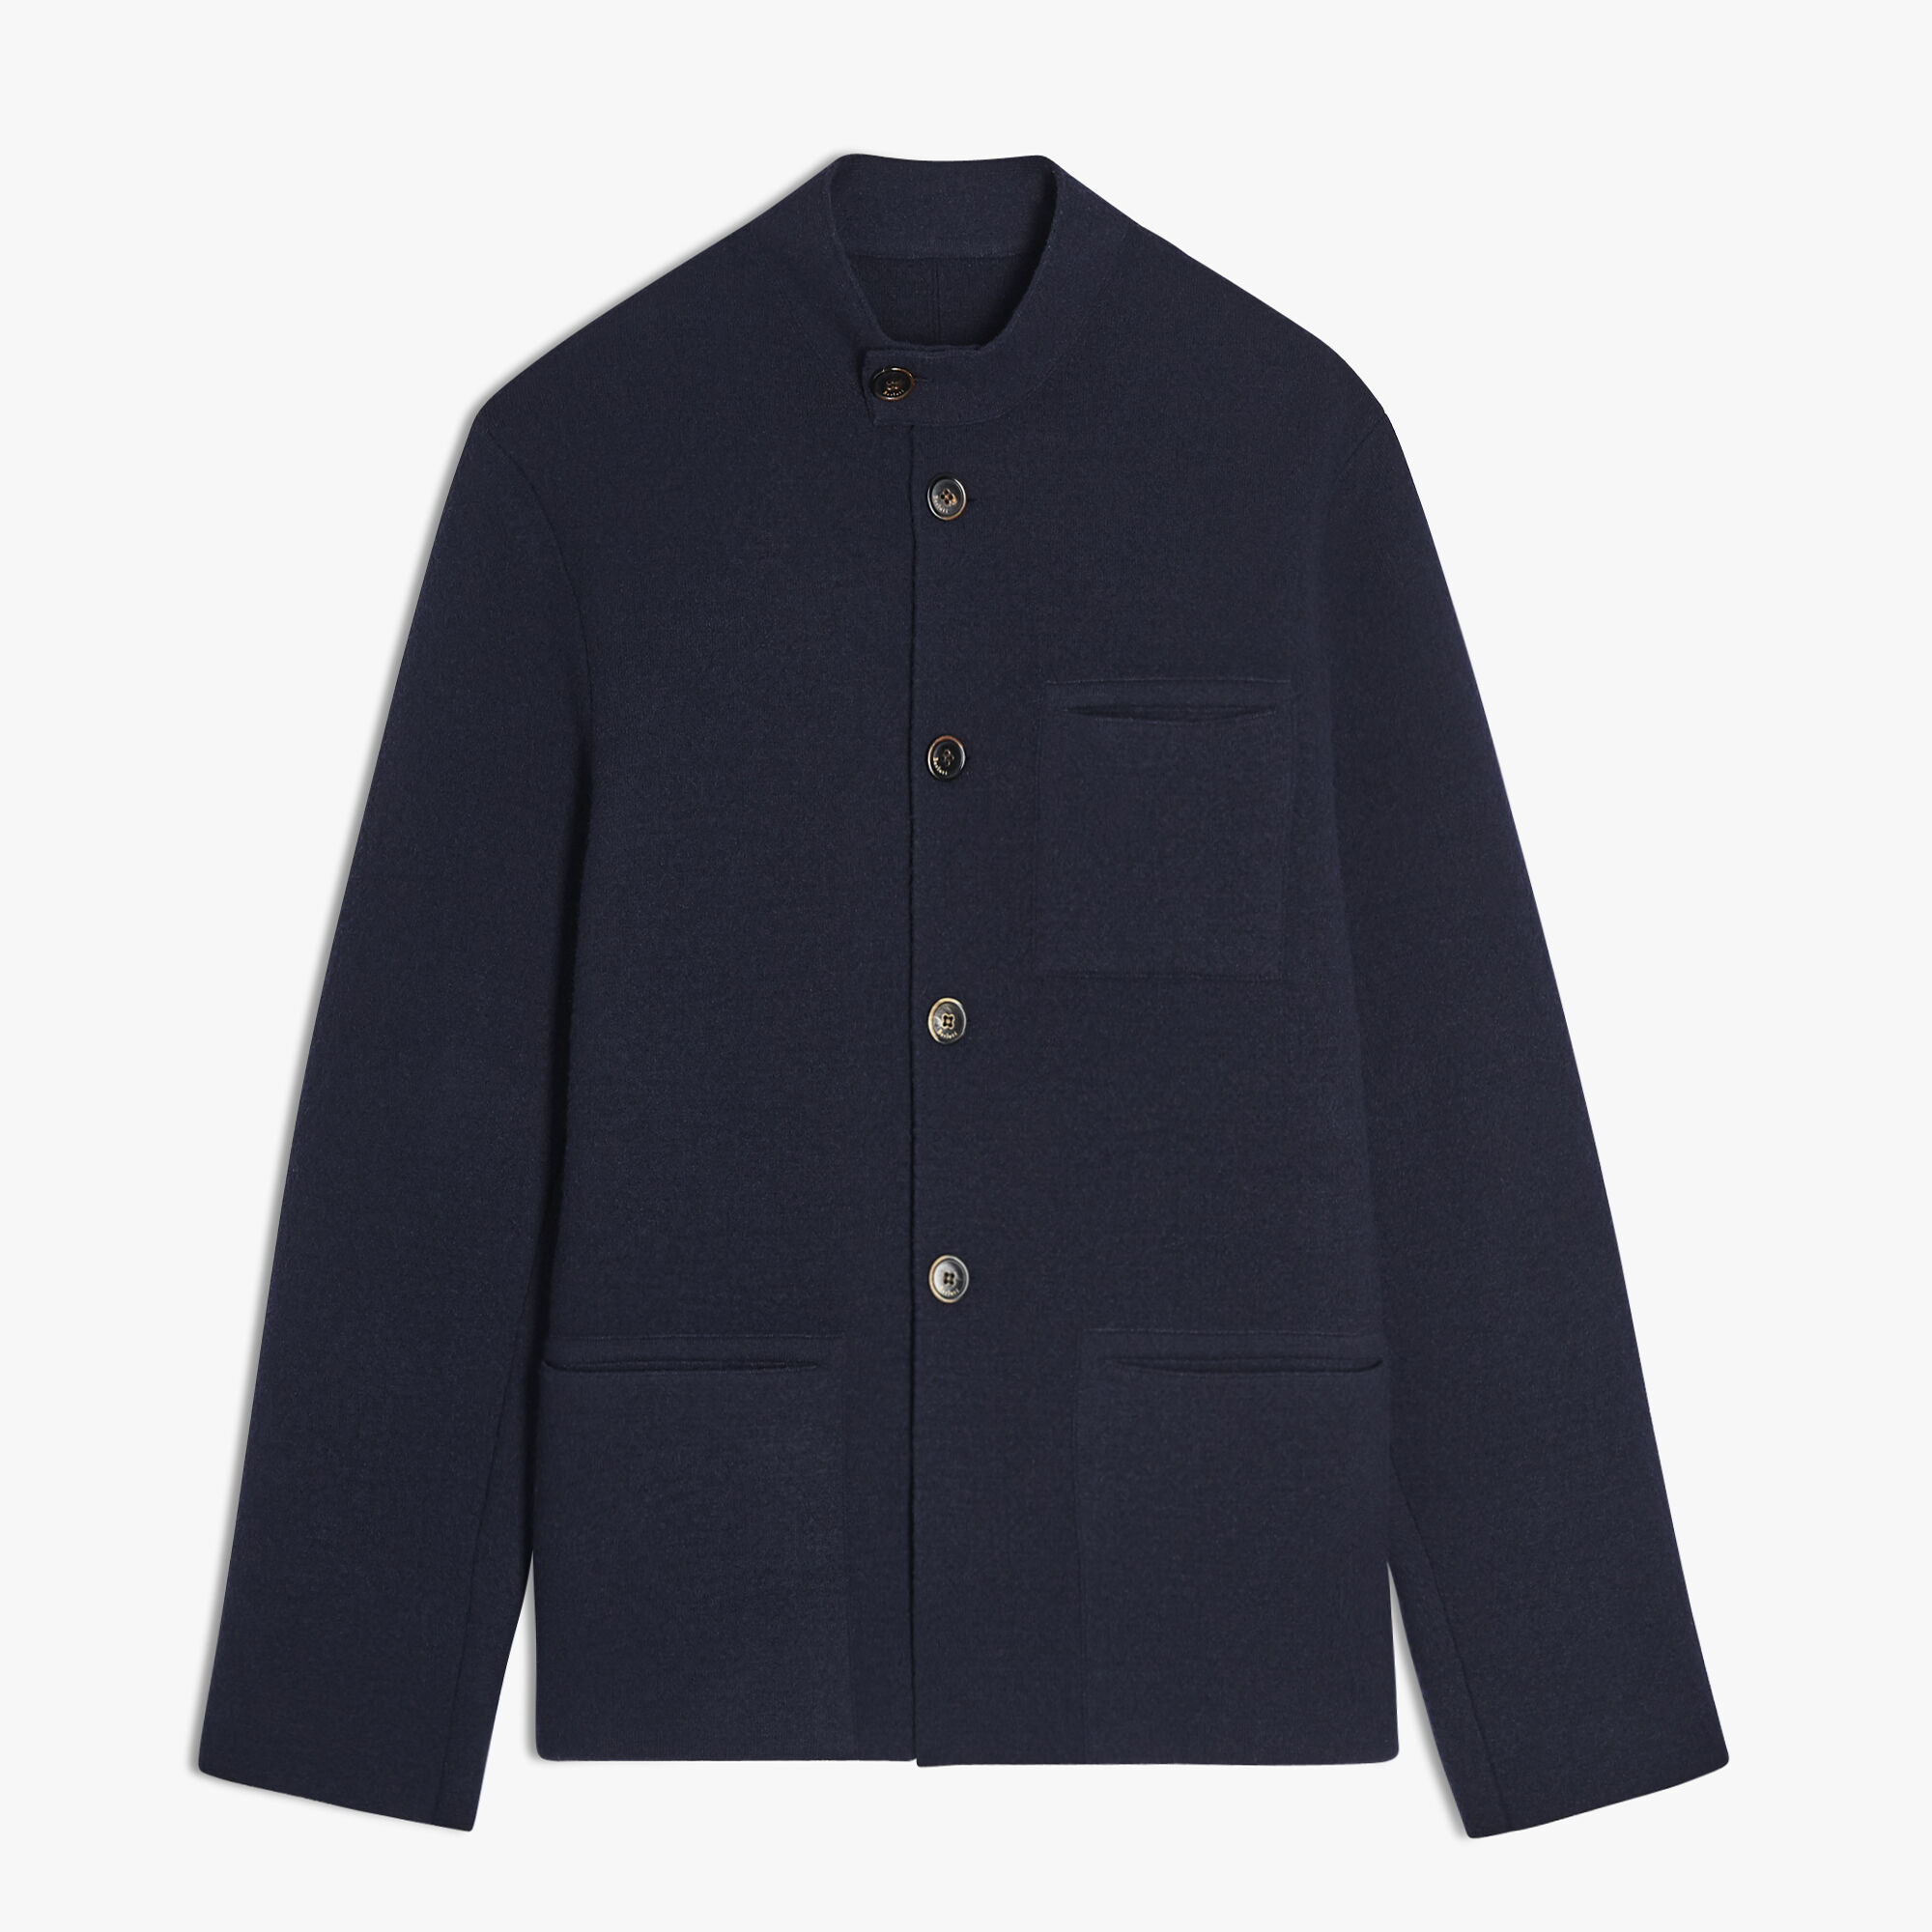 Cashmere And Wool Forestiere Jacket, BLUE NAVY, hi-res